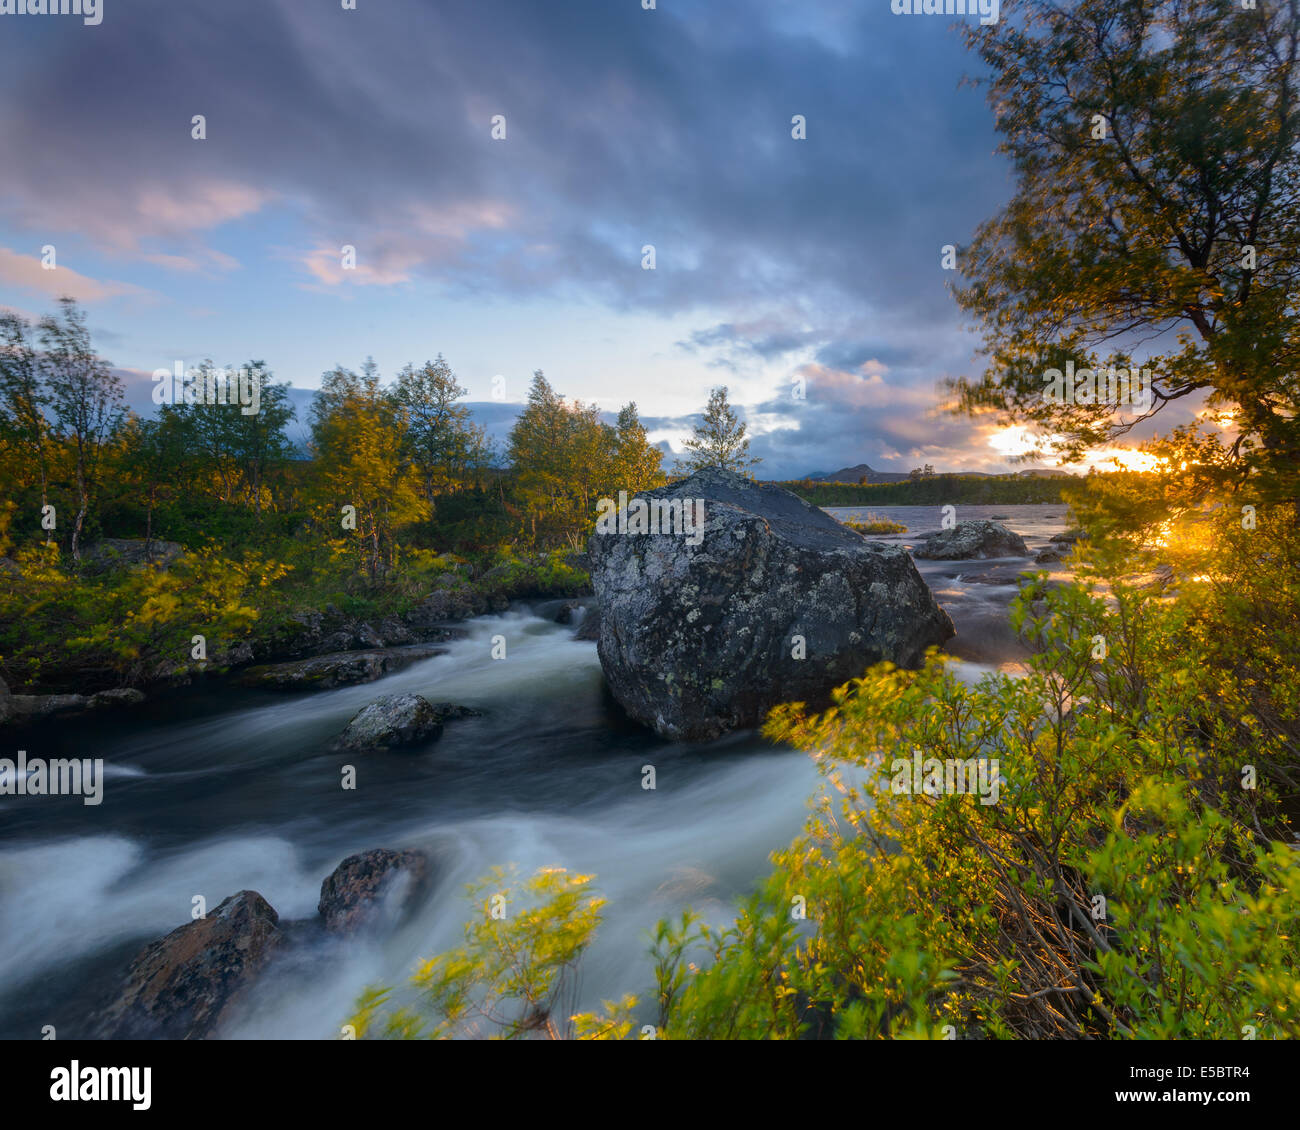 Rapid river during sunset, Dalarna, Sweden - Stock Image